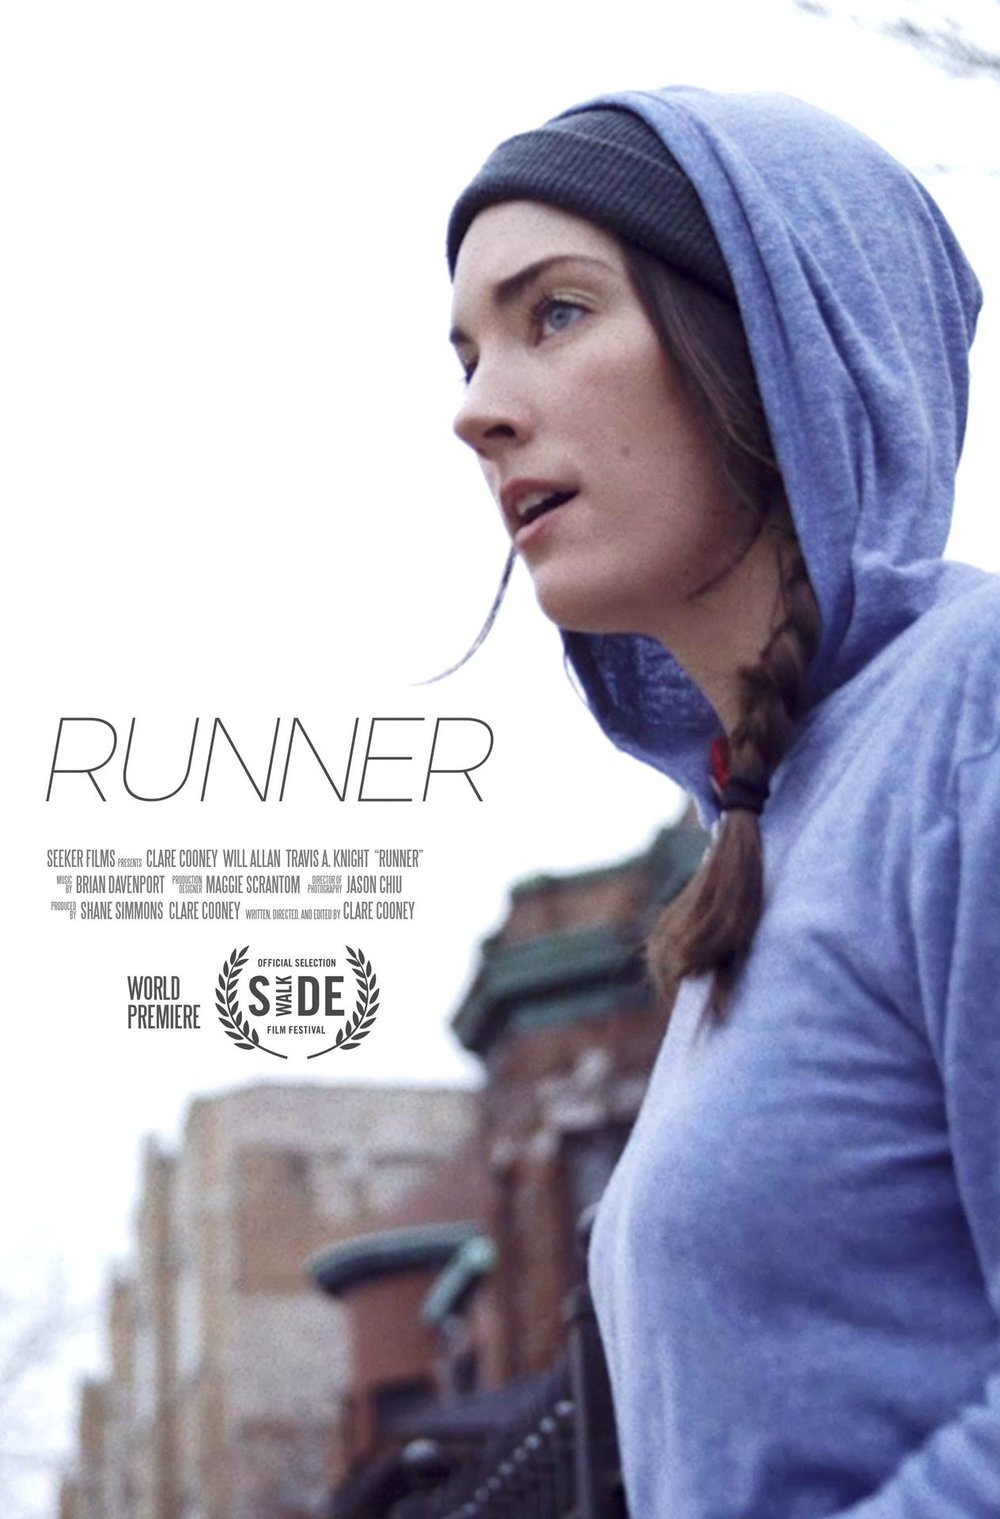 Clare wrote, directed, edited, and starred in this award-winning short film.  RUNNER . Next playing at  The Chicago Critics Film Festival  on May 6th.